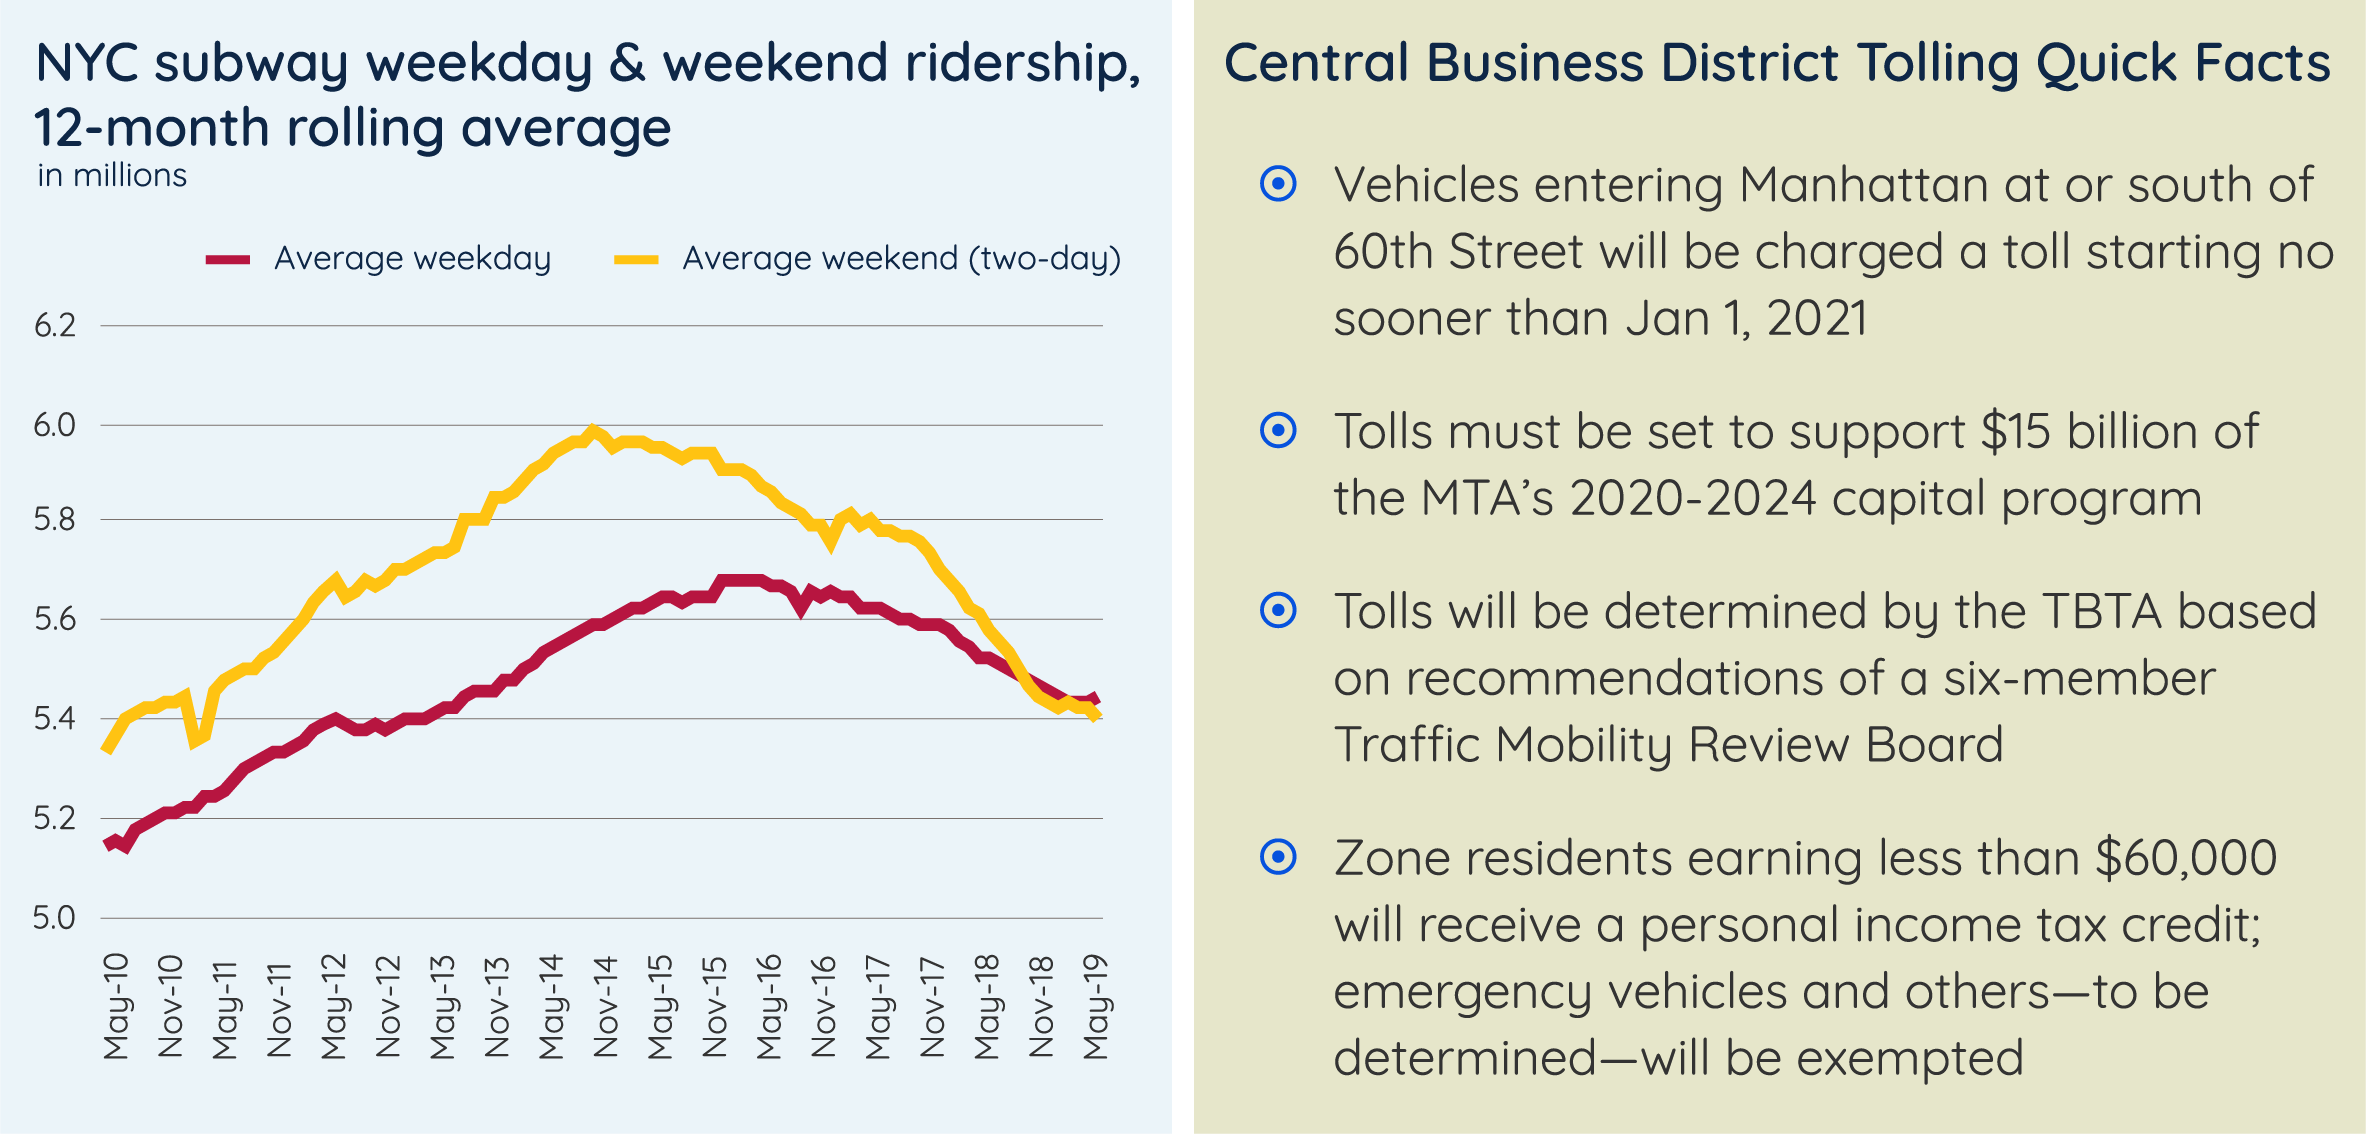 NYC subway weekday & weekend ridership, and Quick facts about CBD tolling